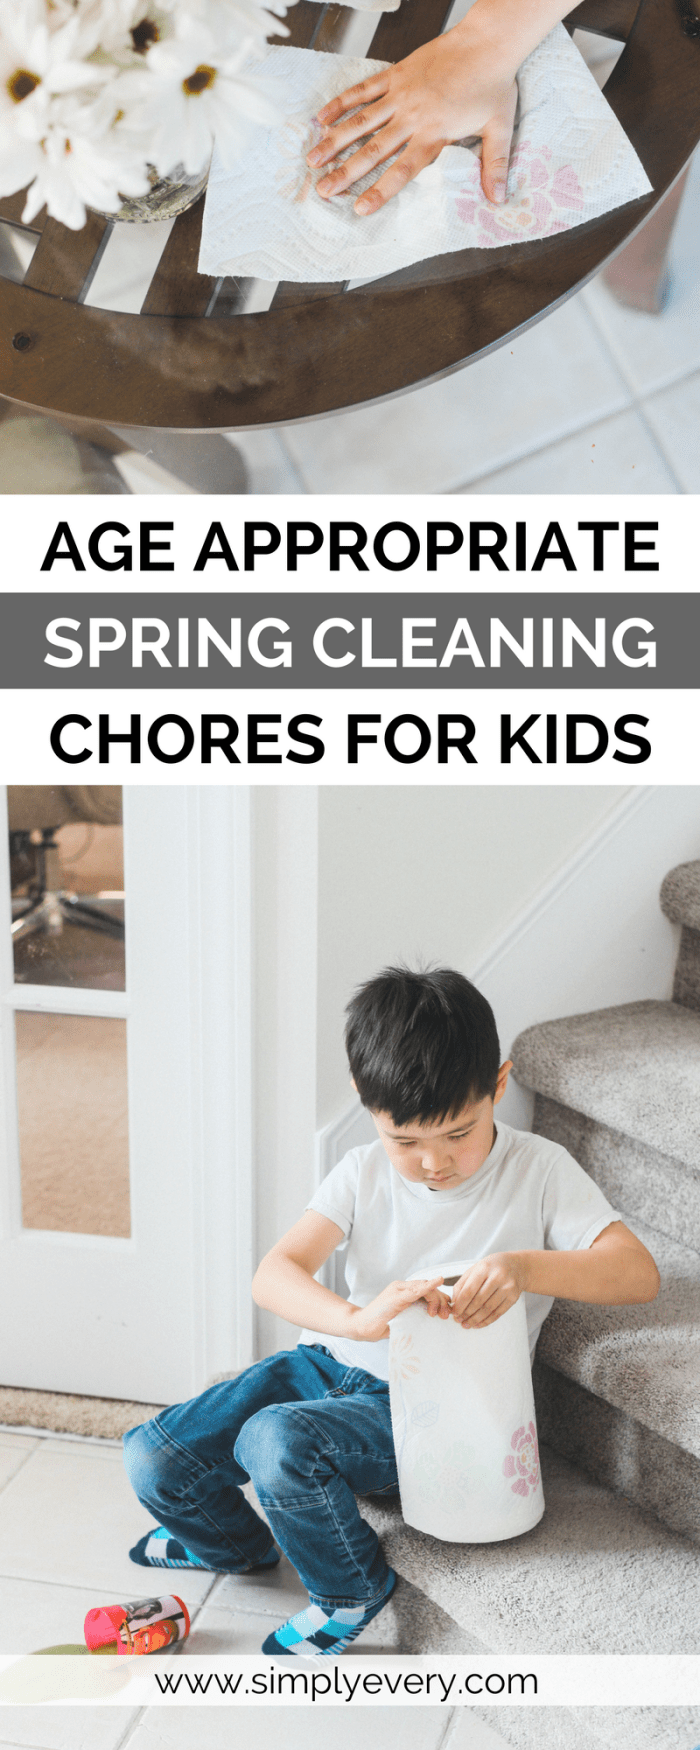 Age Appropriate Spring Cleaning Chores for Kids